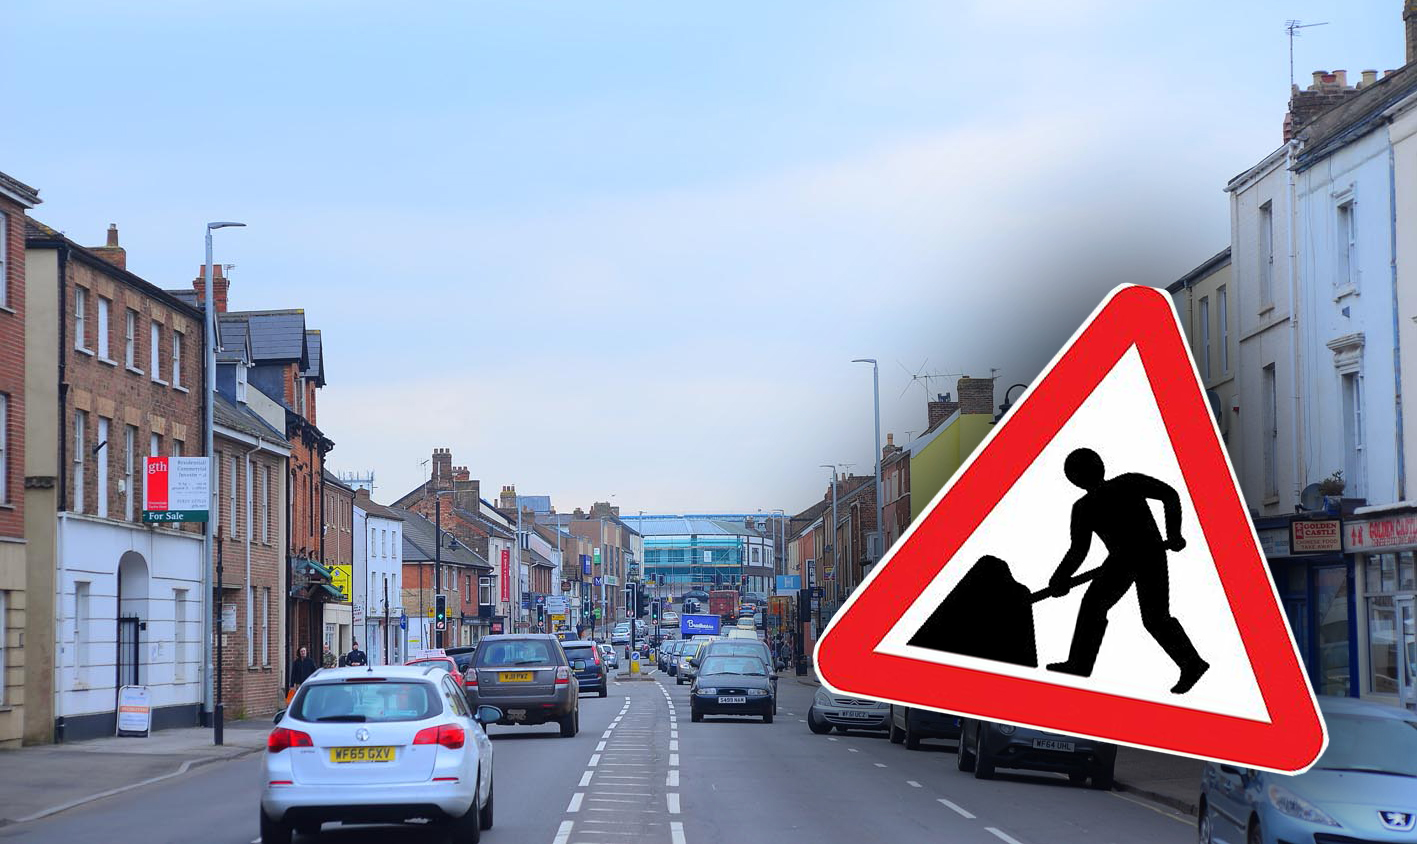 RESURFACING WORK: In East Reach, Taunton, which could cause delays during the evenings